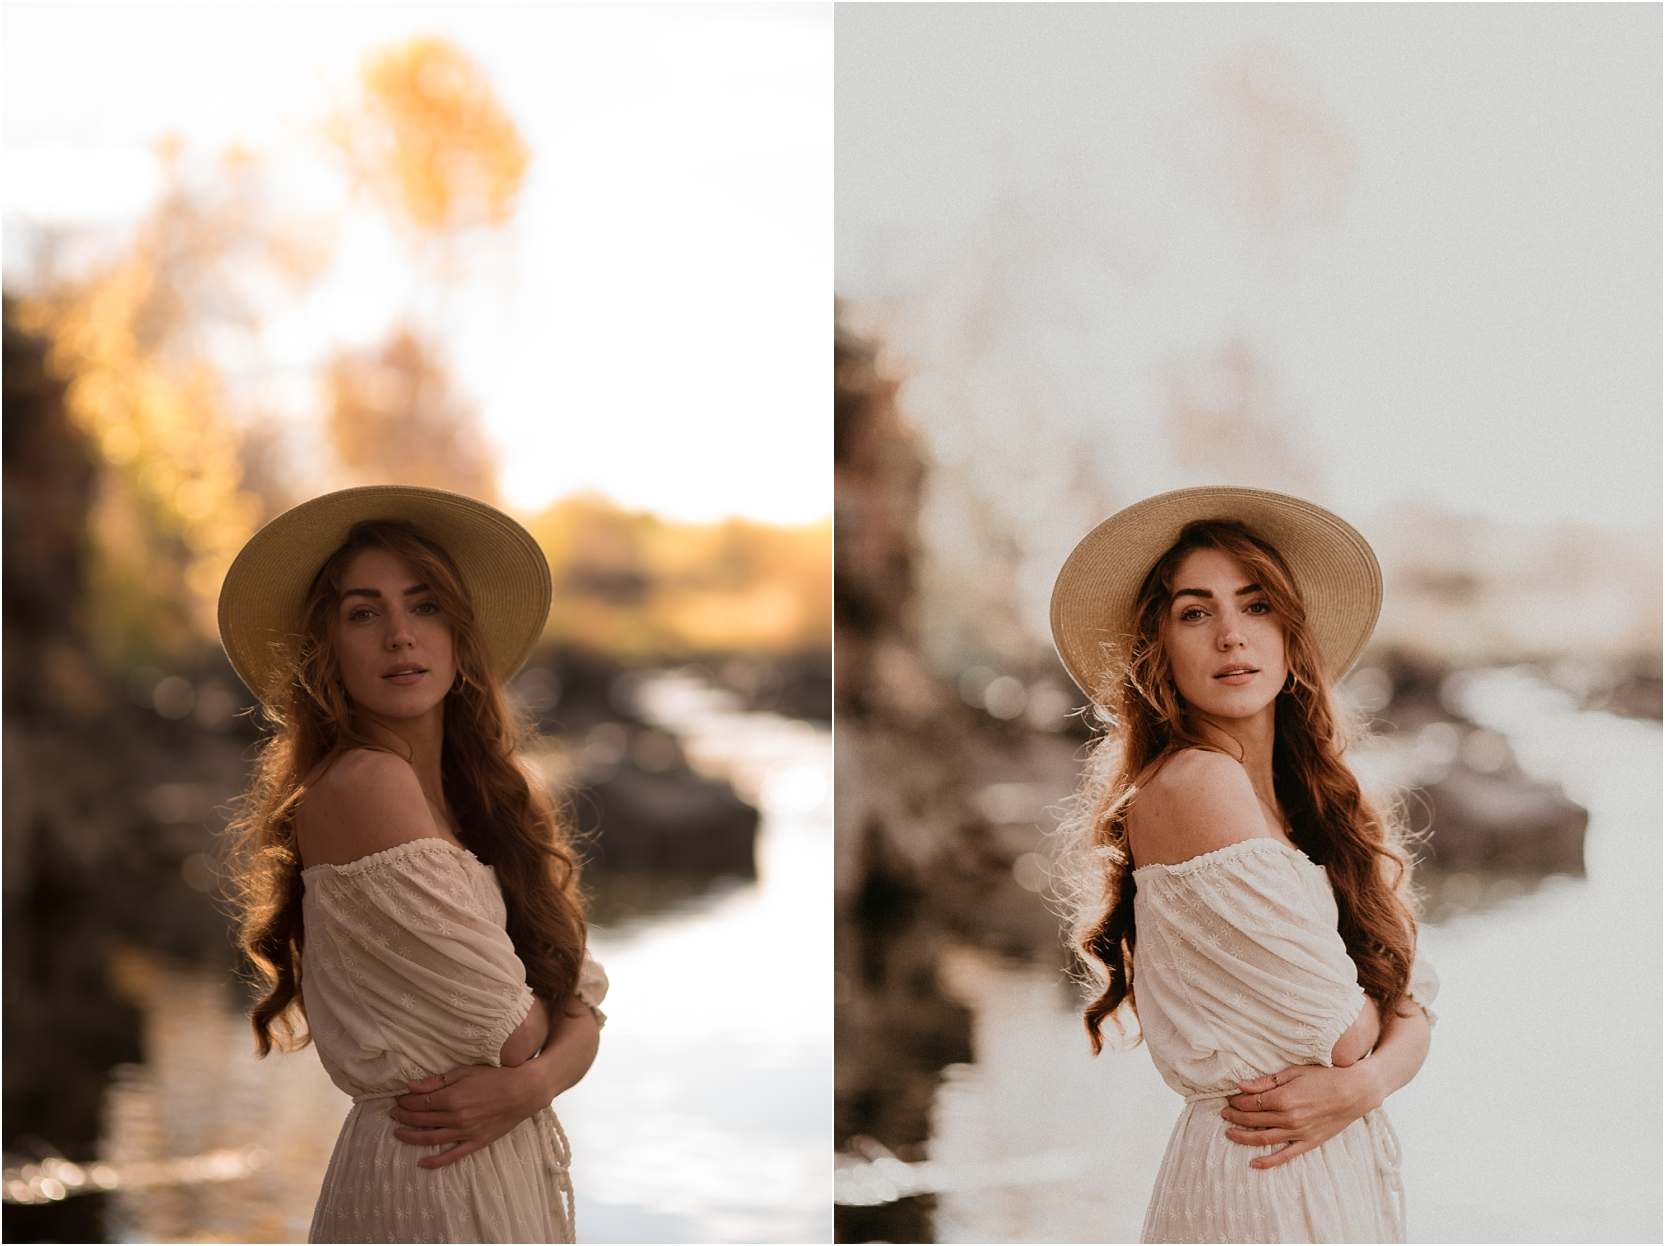 Boise Senior Photographer Idaho Boudoir Photographer Top Editing Presets Lightroom Photoshop Moody Bright Airy Warm Meridian LooksLikeFilm Presets Editing Tips Tricks Tribe Archipelago Kelsie Fields Shop Doen Photography Mentor